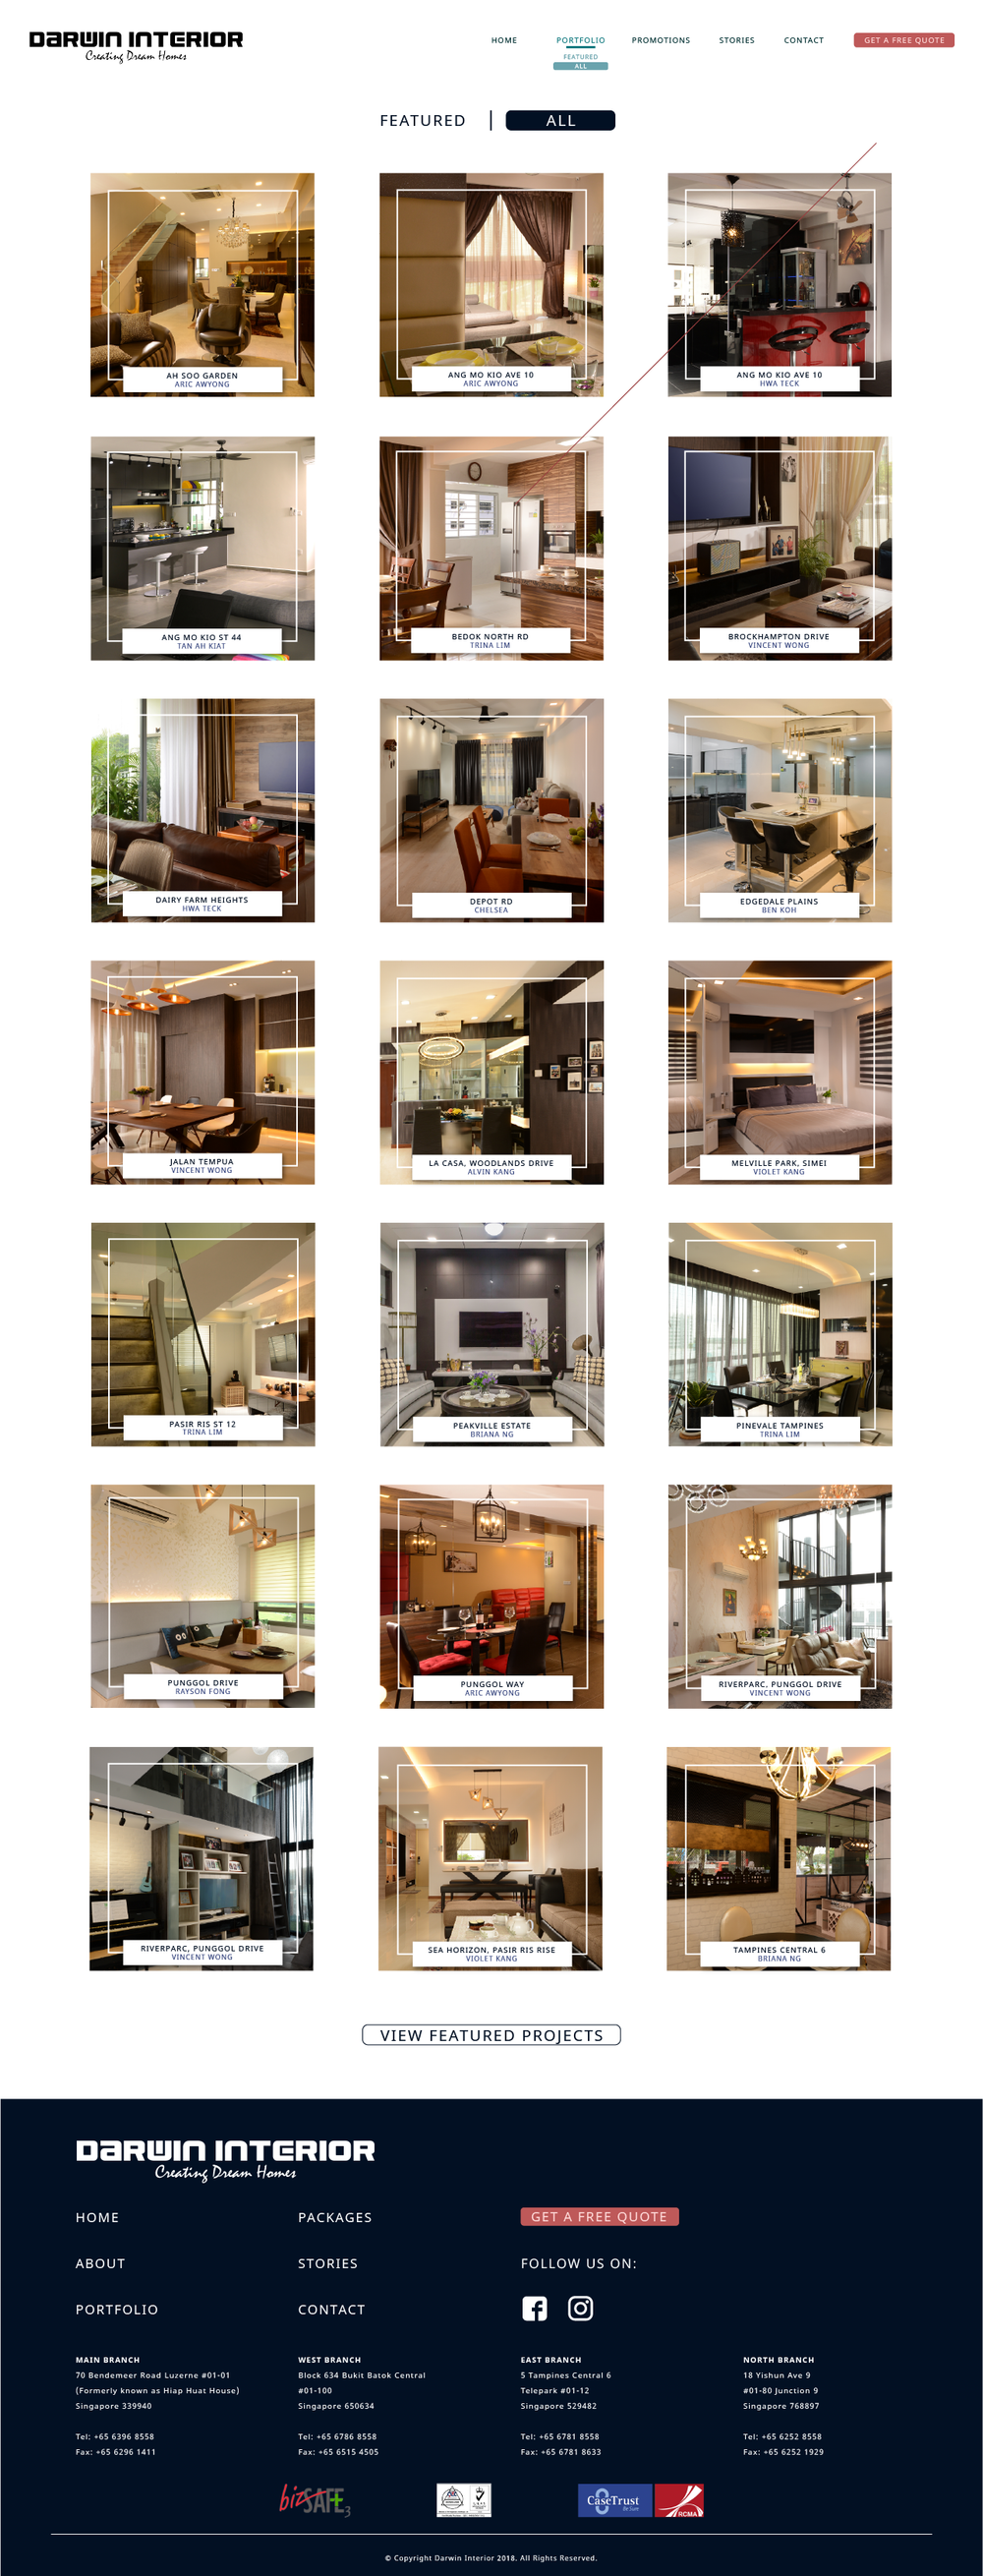 Darwin Interior_Web Design_Port-03.png